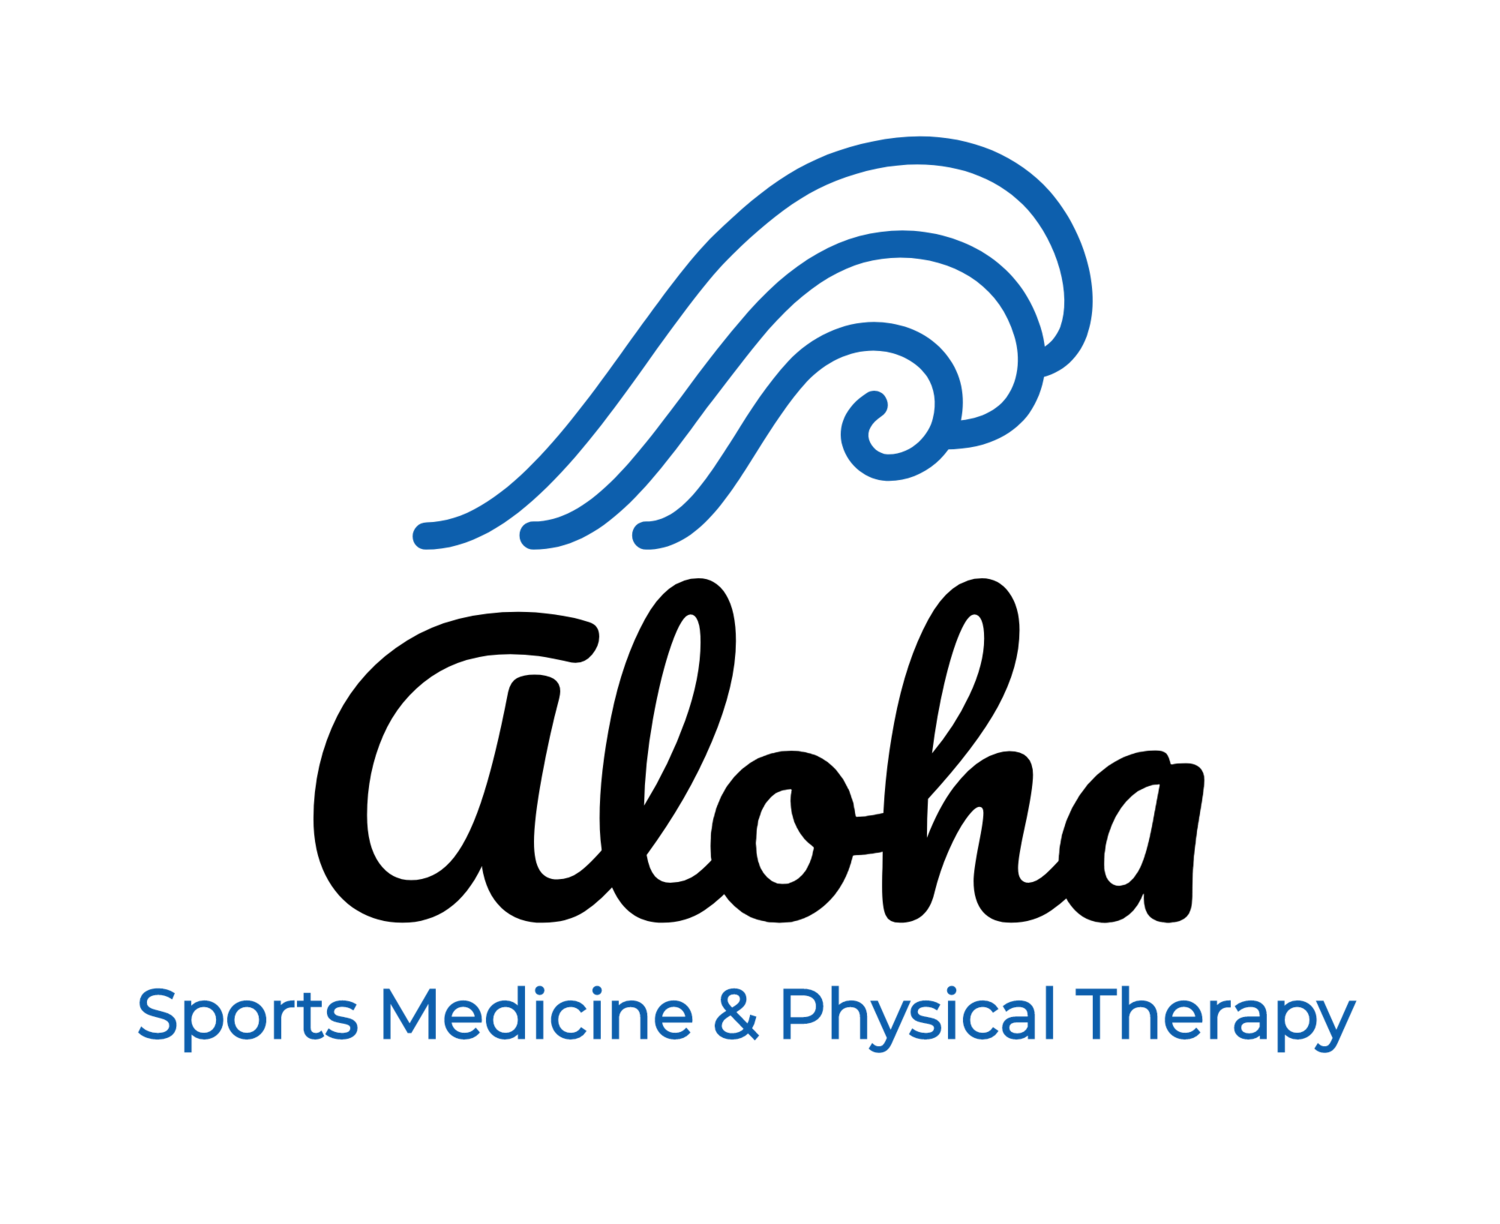 Aloha Sports Medicine & Physical Therapy